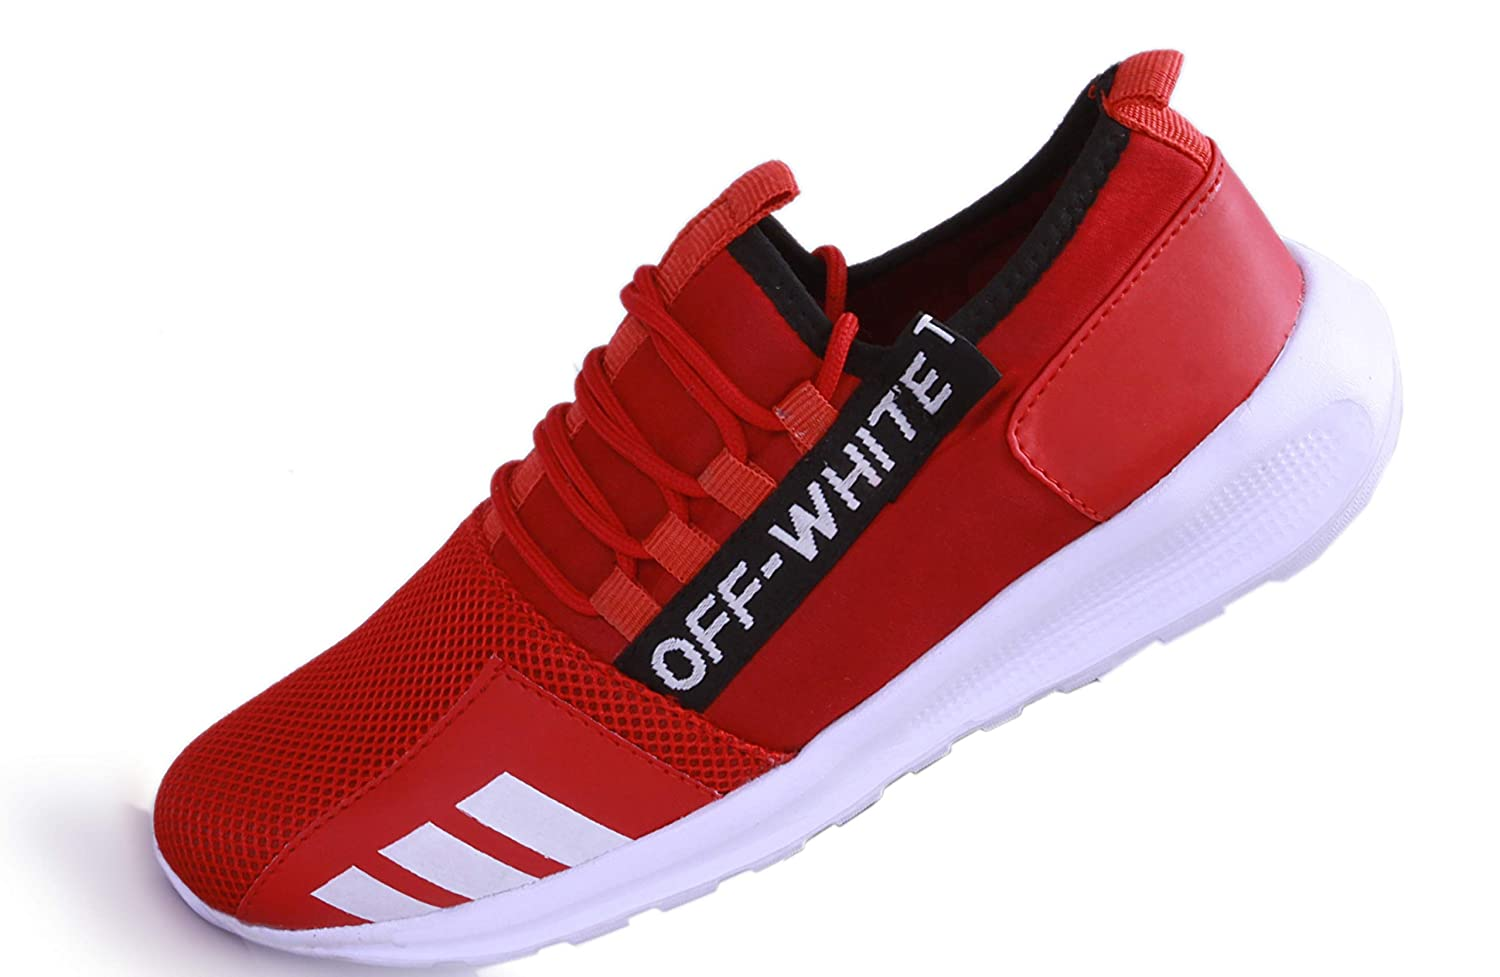 Buy Abh World Mens Trainers Athletic Walking Running Gyming Jogging Fitness  Sneakers/Sports Shoes Red (8) at Amazon.in